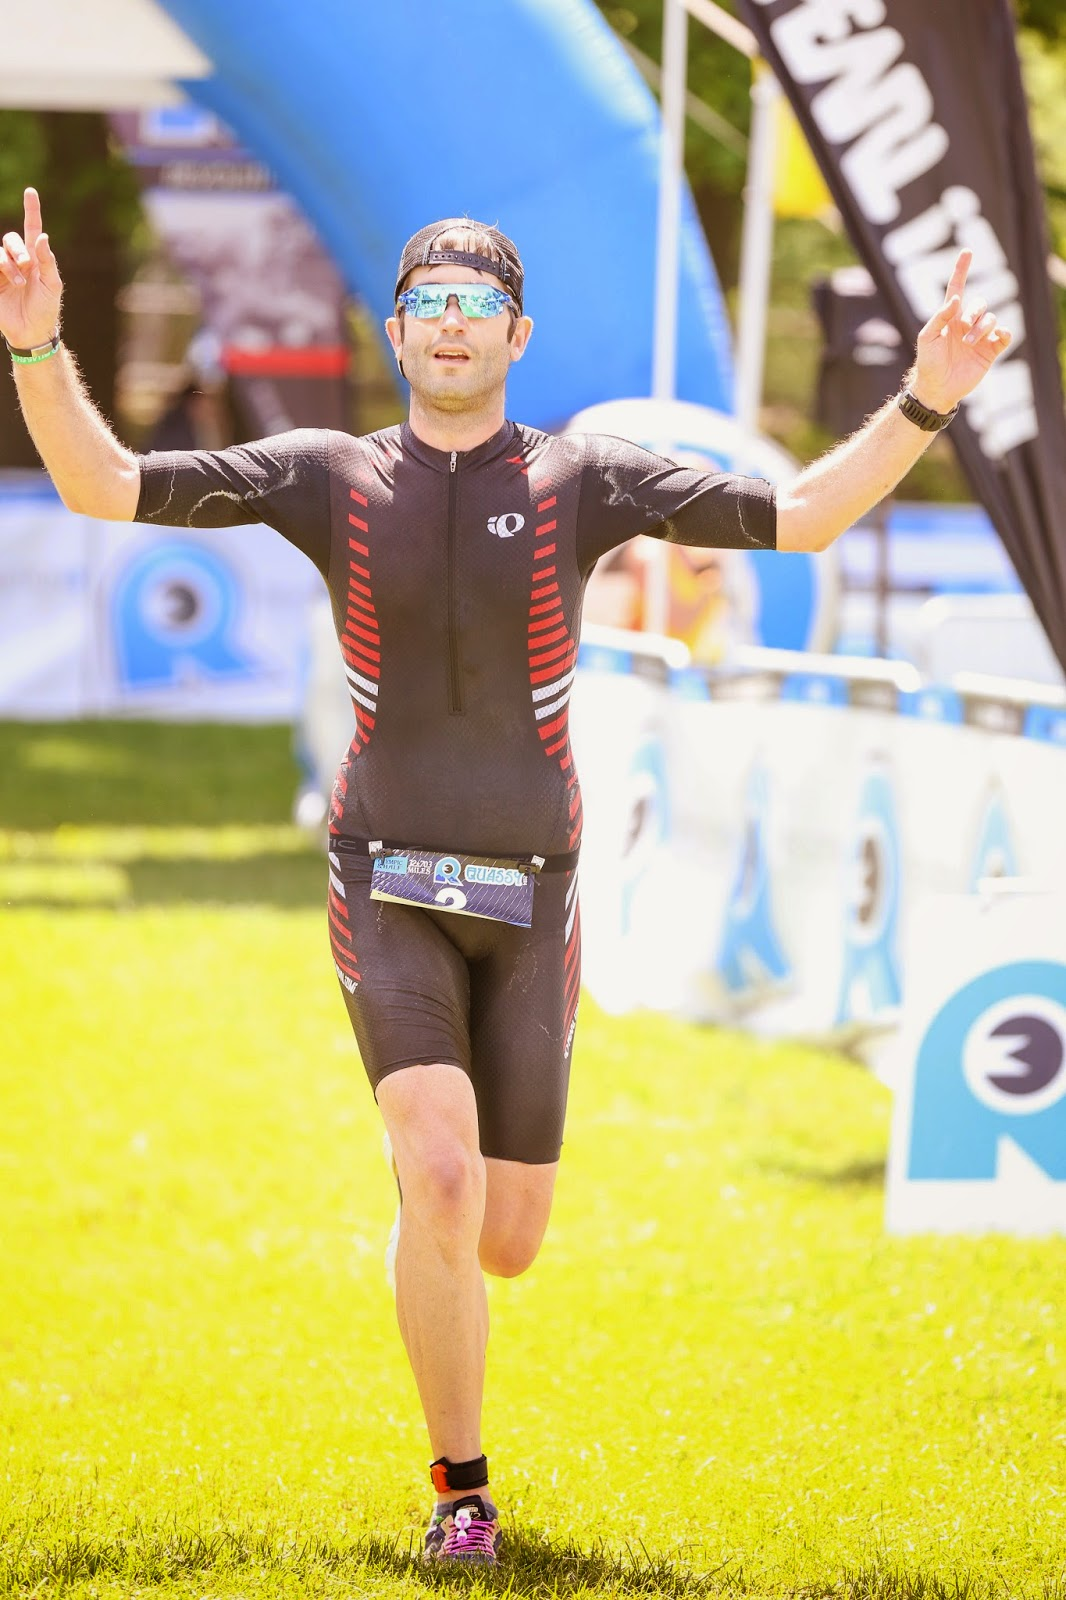 rev3tri quassyct 006807 The Hook Brings You Back: 171 Miles of Racing in 8 Days Report